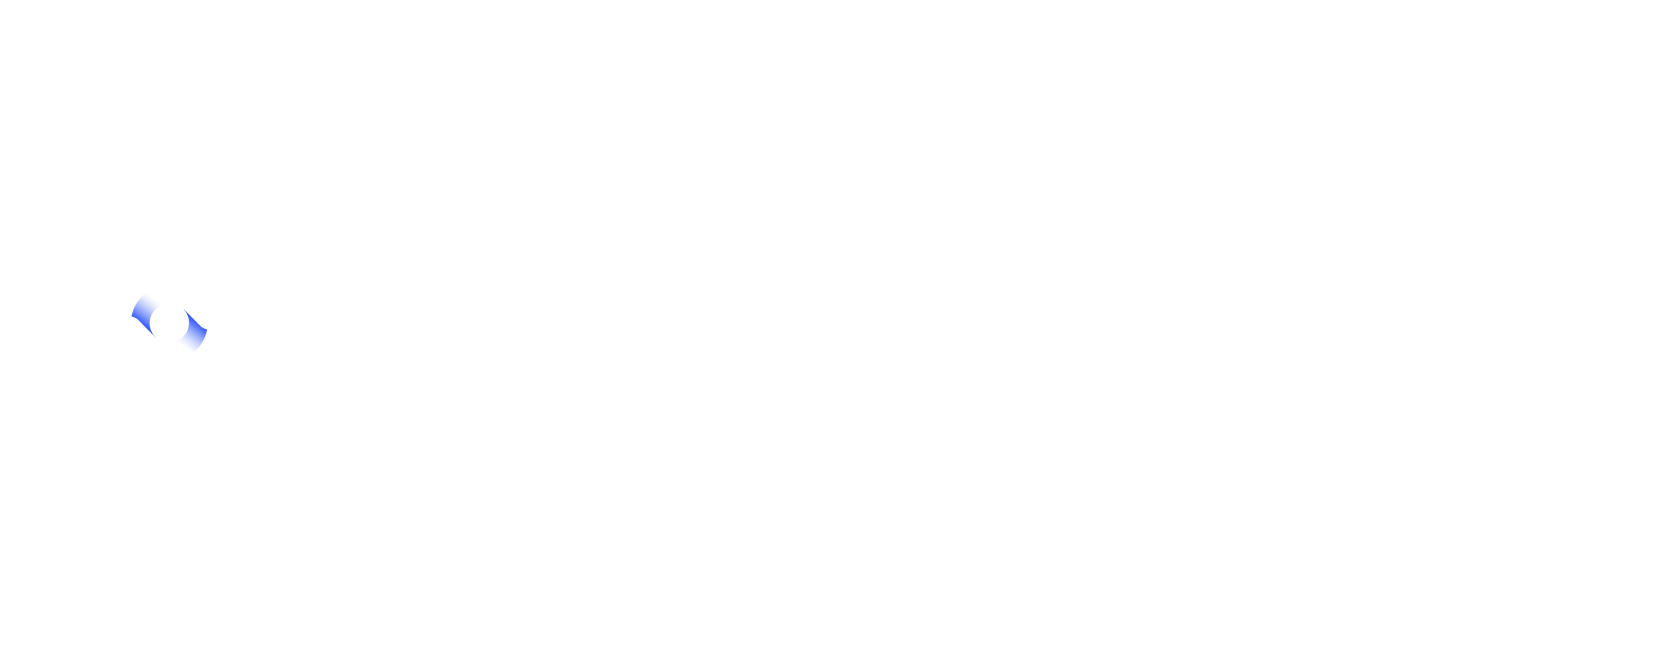 CrossCountry Consulting and AuditBoard Partner to Provide End-to-End Solution